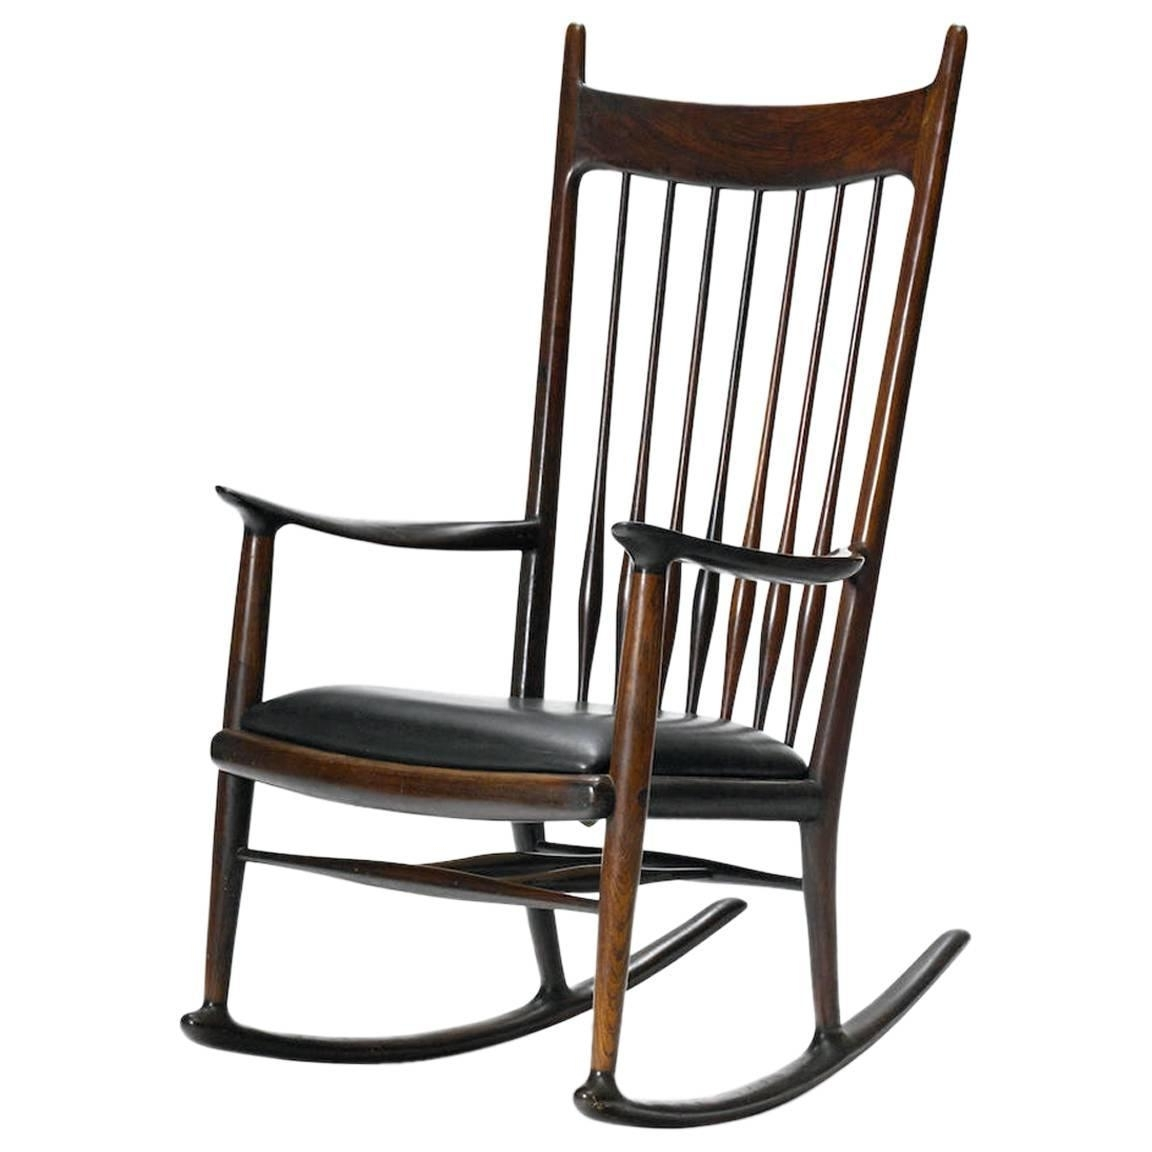 Rare Early Rosewood Rocking Chairsam Maloof For Sale At 1Stdibs Within Recent Rocking Chairs At Sam's Club (View 12 of 20)